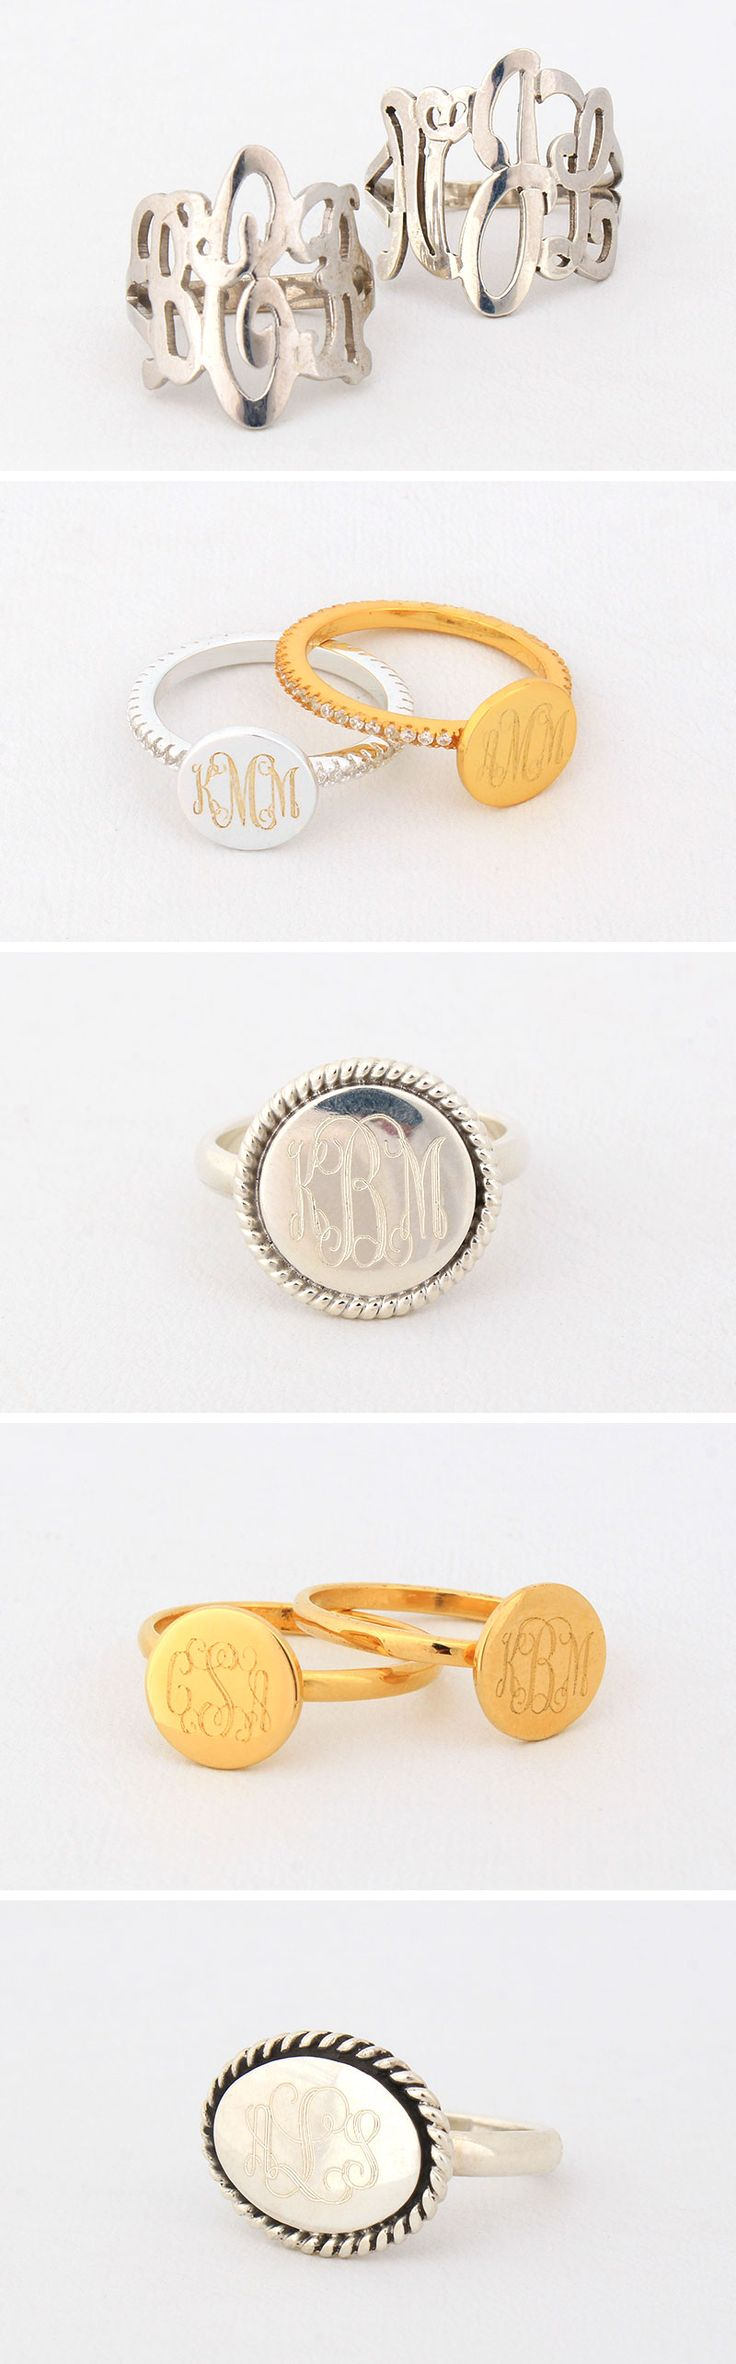 Which monogrammed ring is your fav? Shop Marleylilly.com to find all your #fashion accessories! #monogram #monogrammed #marleylilly